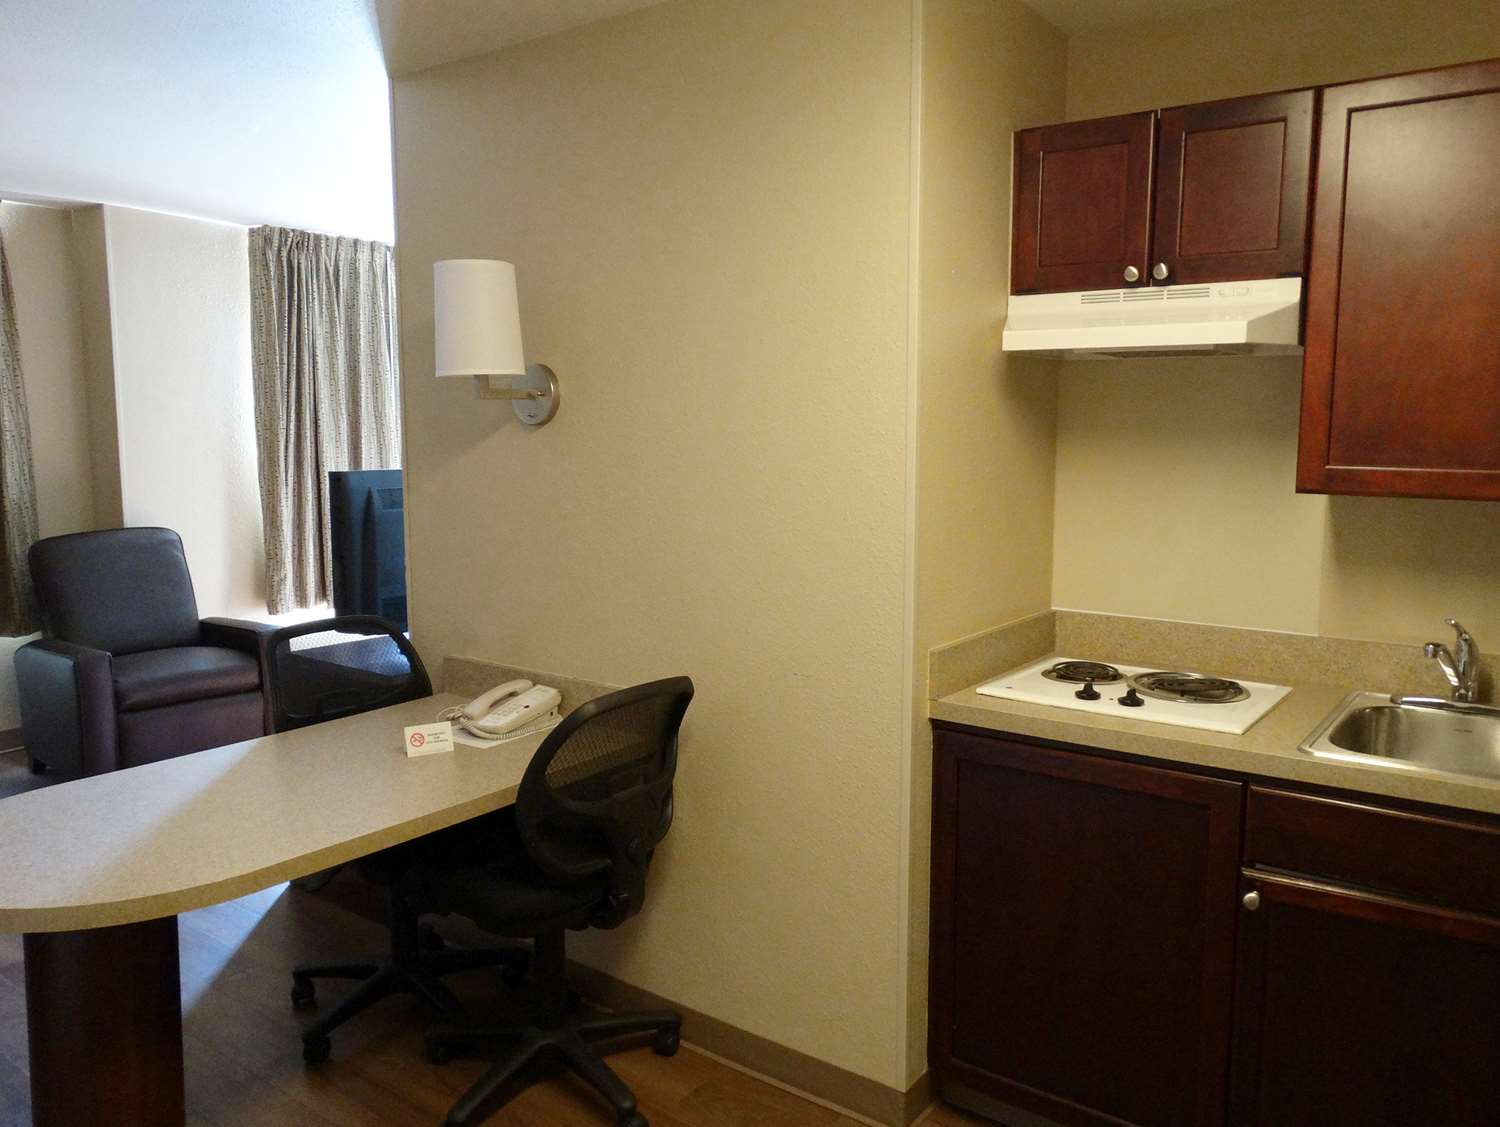 Extended Stay America Hotel Blvd Rio Rancho, NM - See Discounts